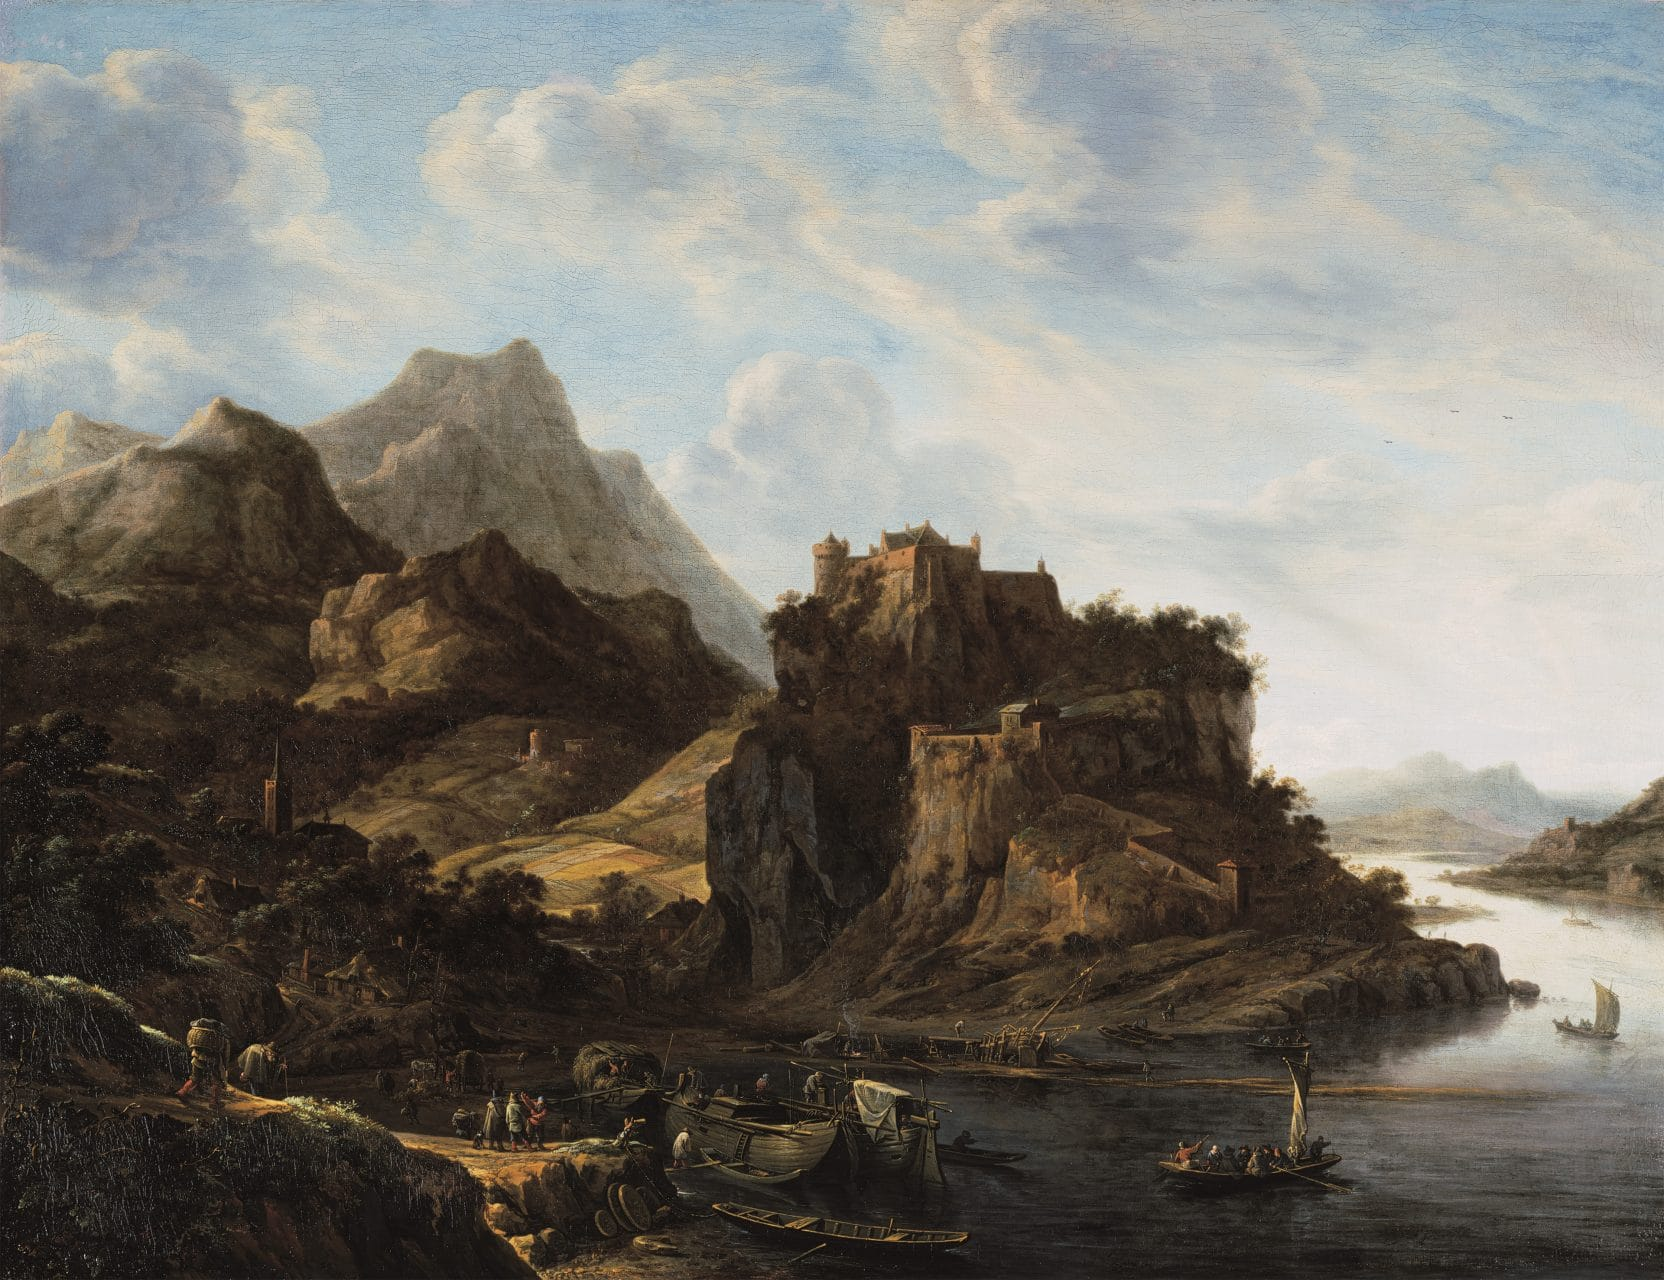 Herman Saftleven, Rhine landscape with many boats, 1649.